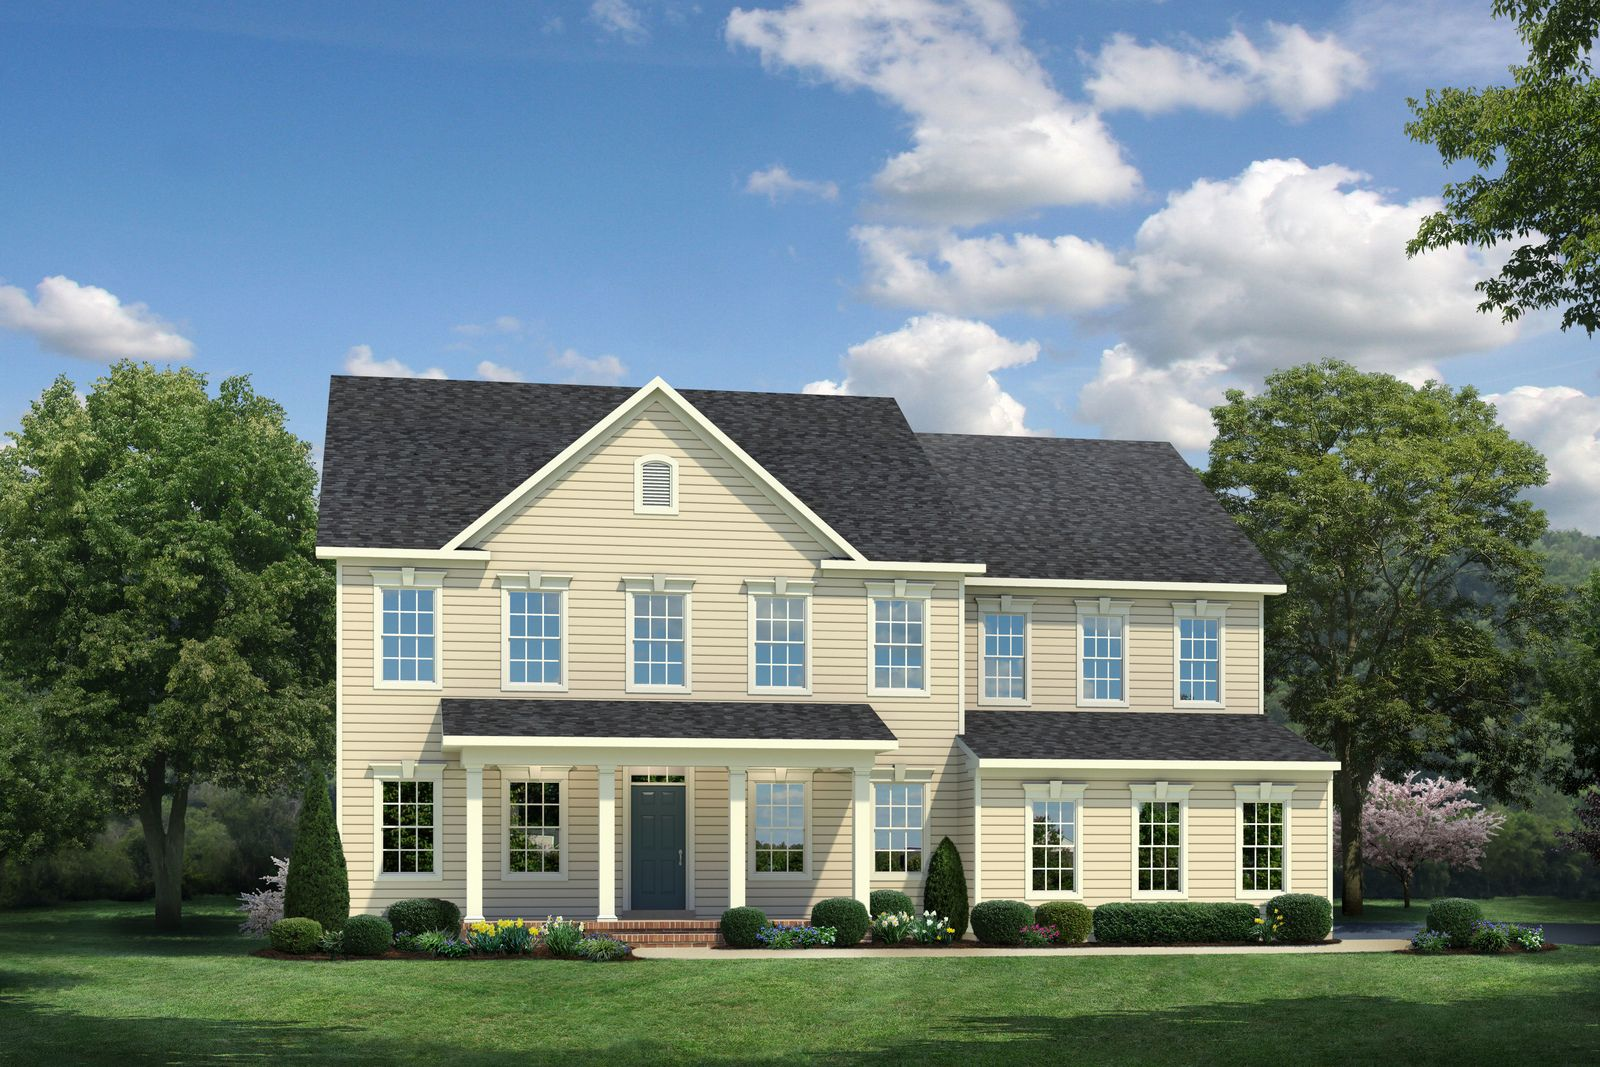 Single Family for Active at Potomac Shores Estates - Normandy At Potomac Shores 2175 Potomac River Blvd. Dumfries, Virginia 22026 United States